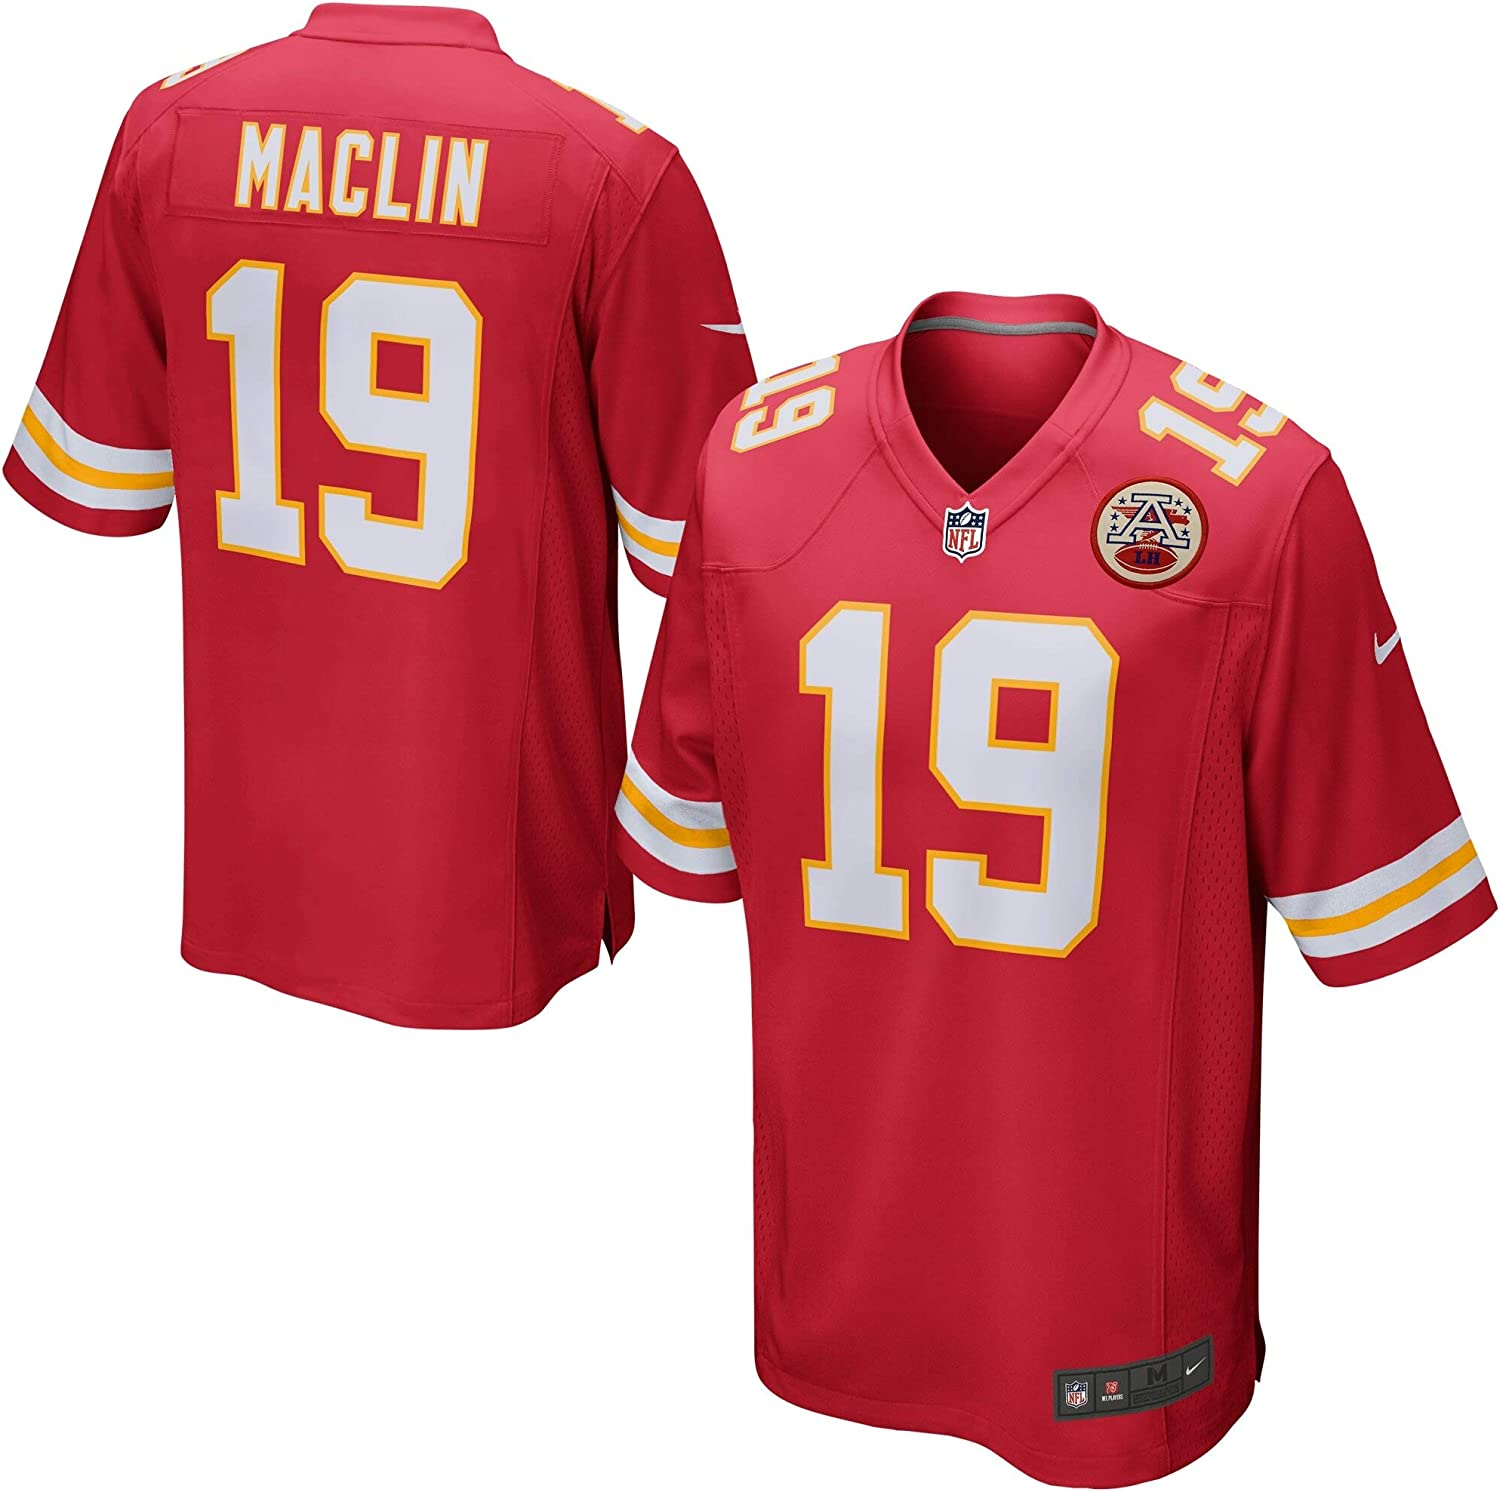 Nike Some reservation Toddlers Kansas City Jeremy #19 Seattle Mall Maclin Jersey Peter Player